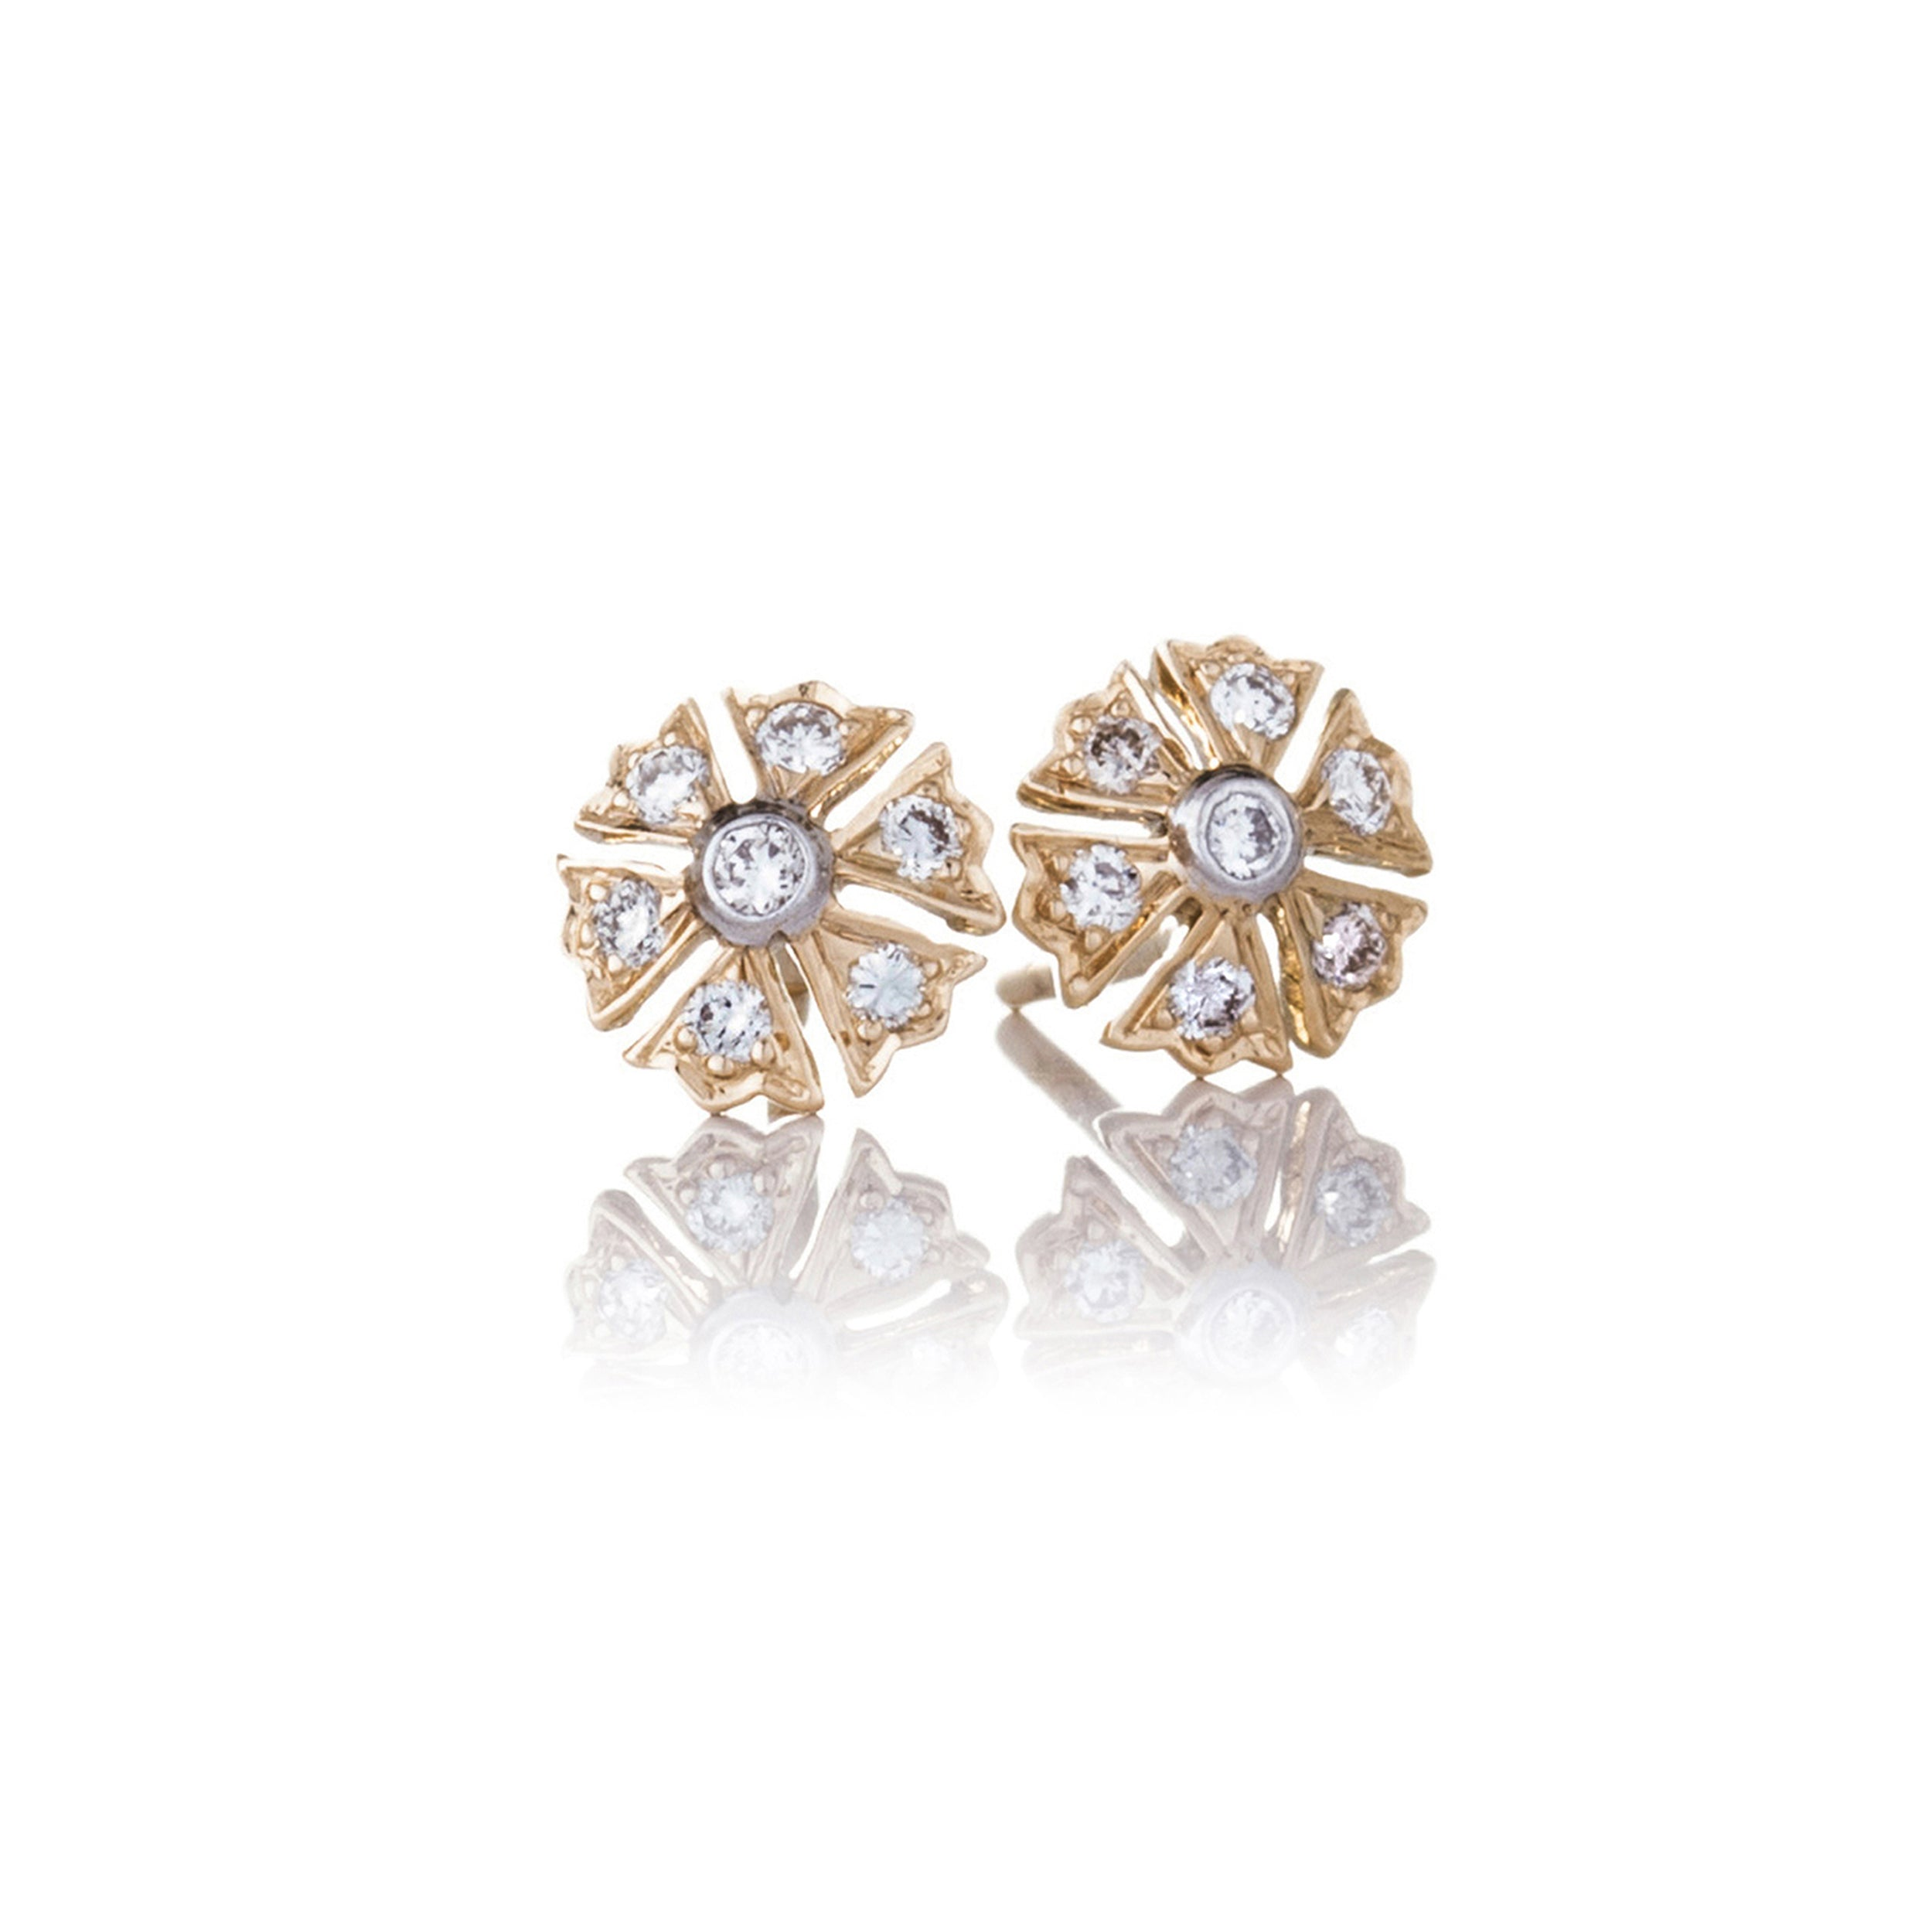 The Camelia Earrings - White and Gold